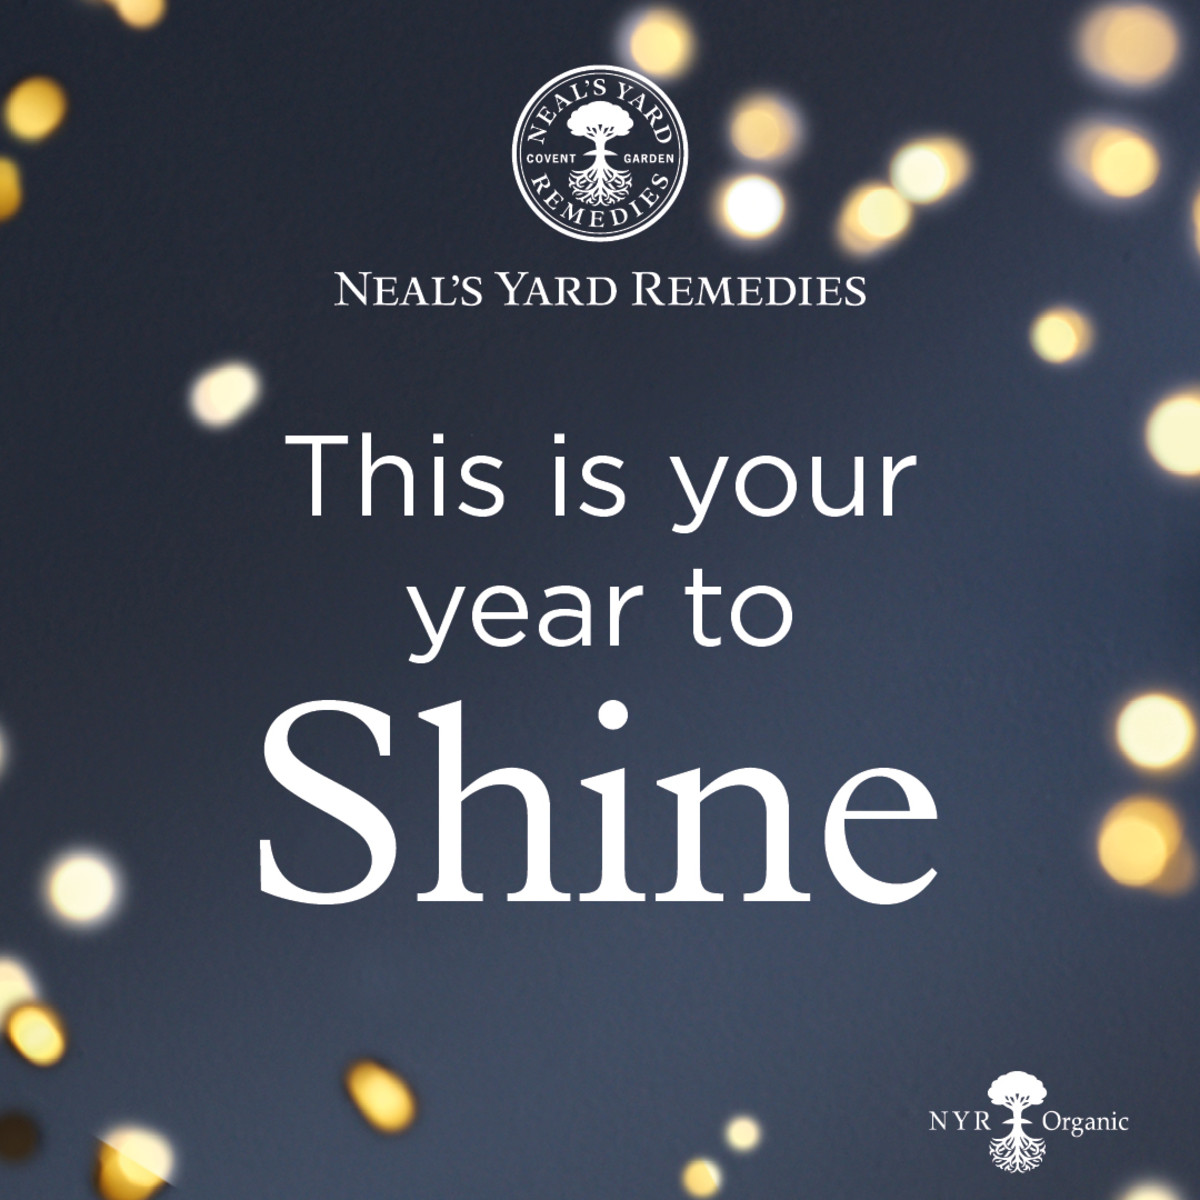 7-reasons-to-become-a-neals-yard-remedies-independent-consultant